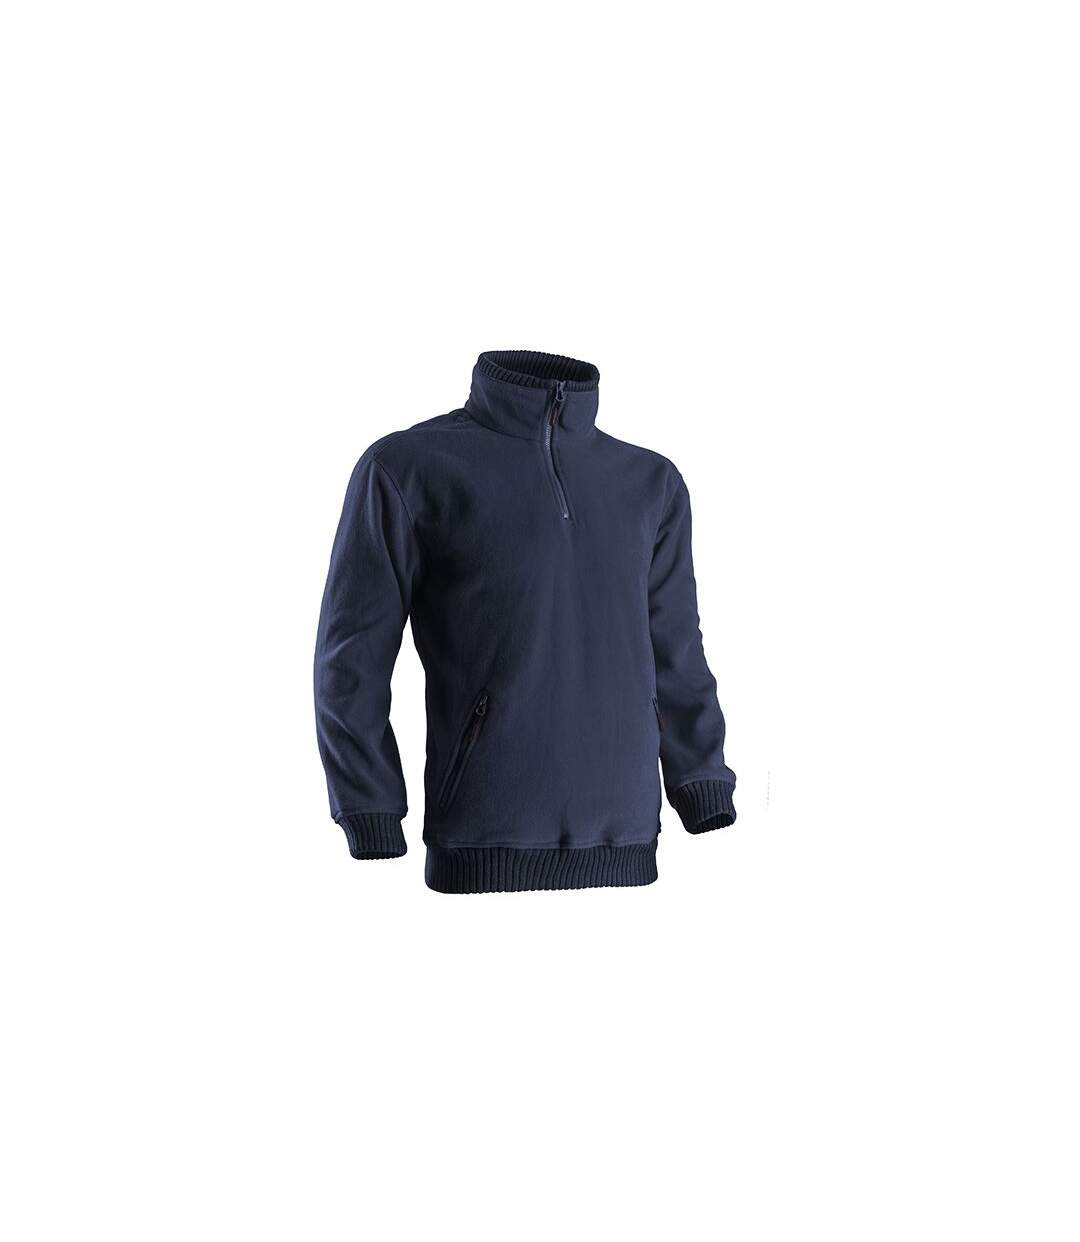 Pull  polaire Coverguard Angara Col camionneur